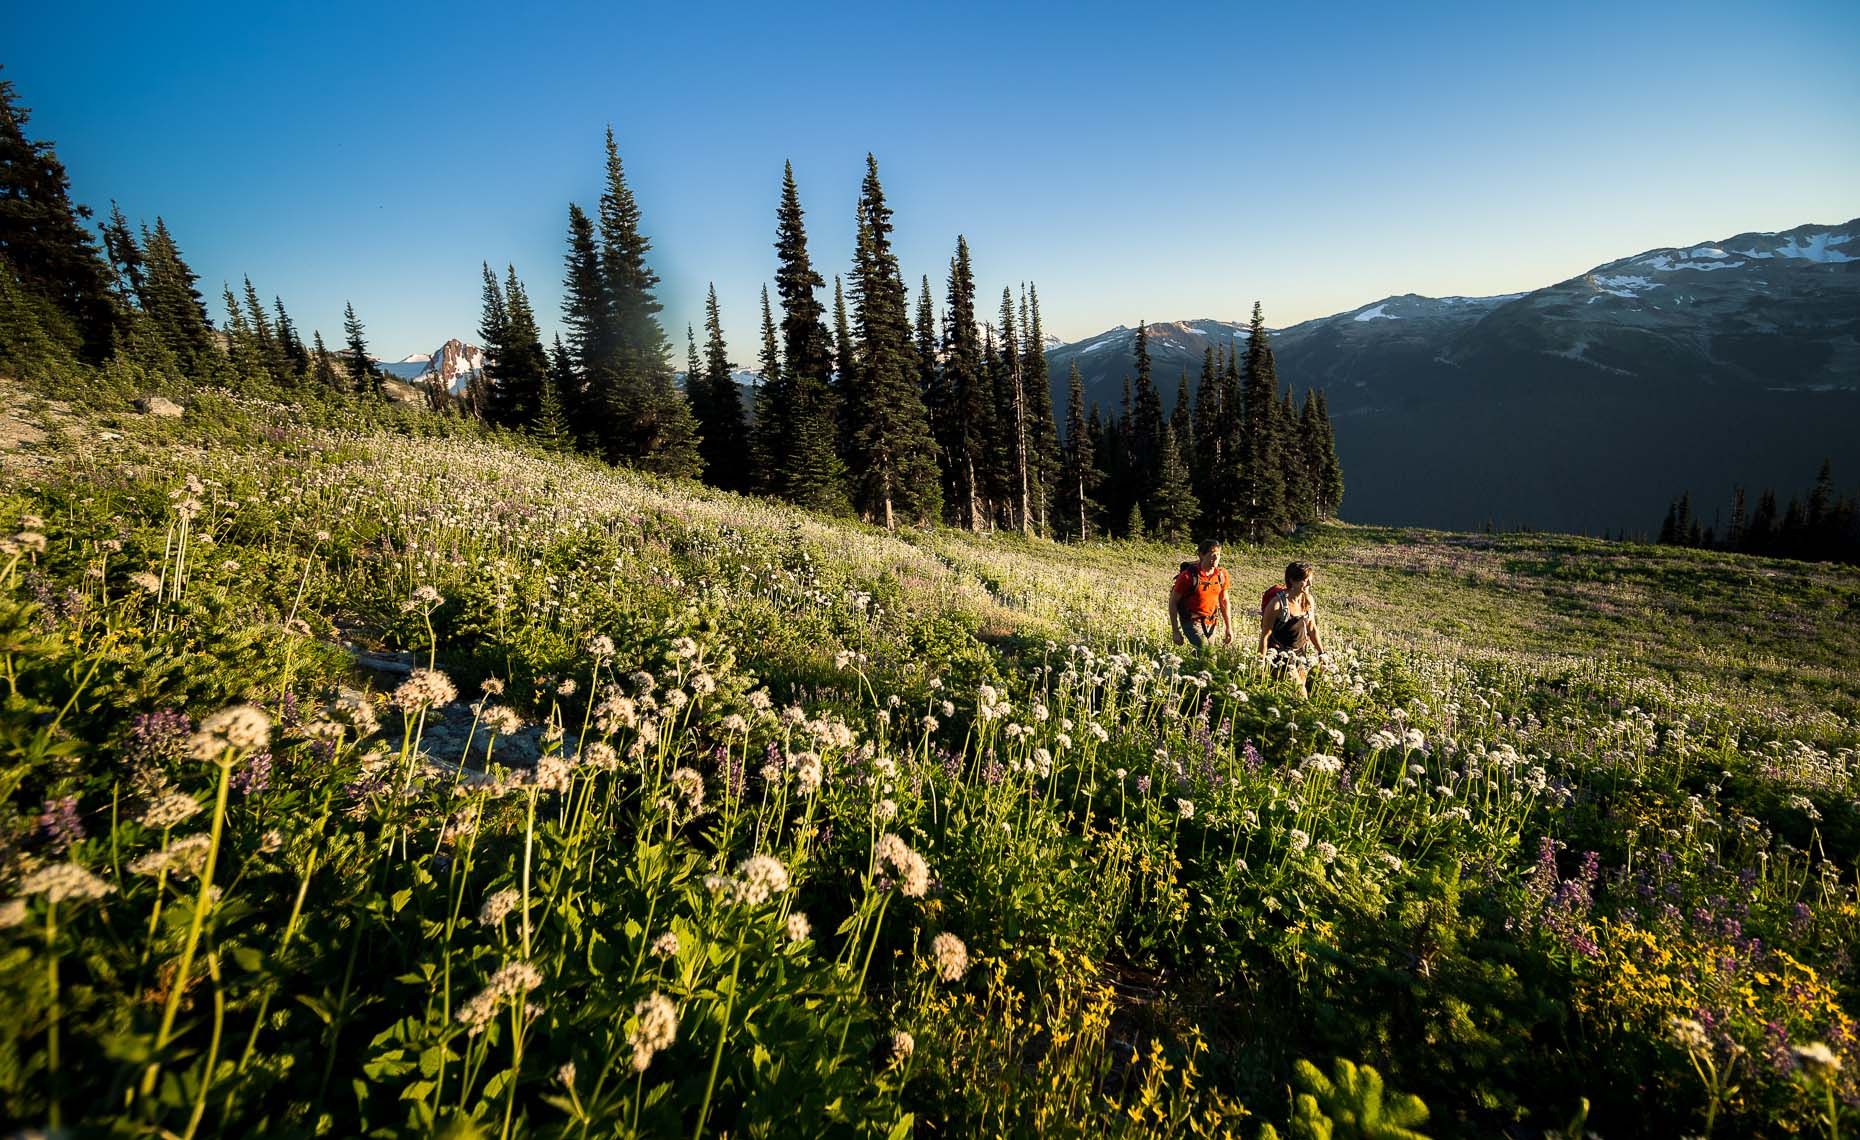 Outdoor lifestyle scenic photography in Whistler